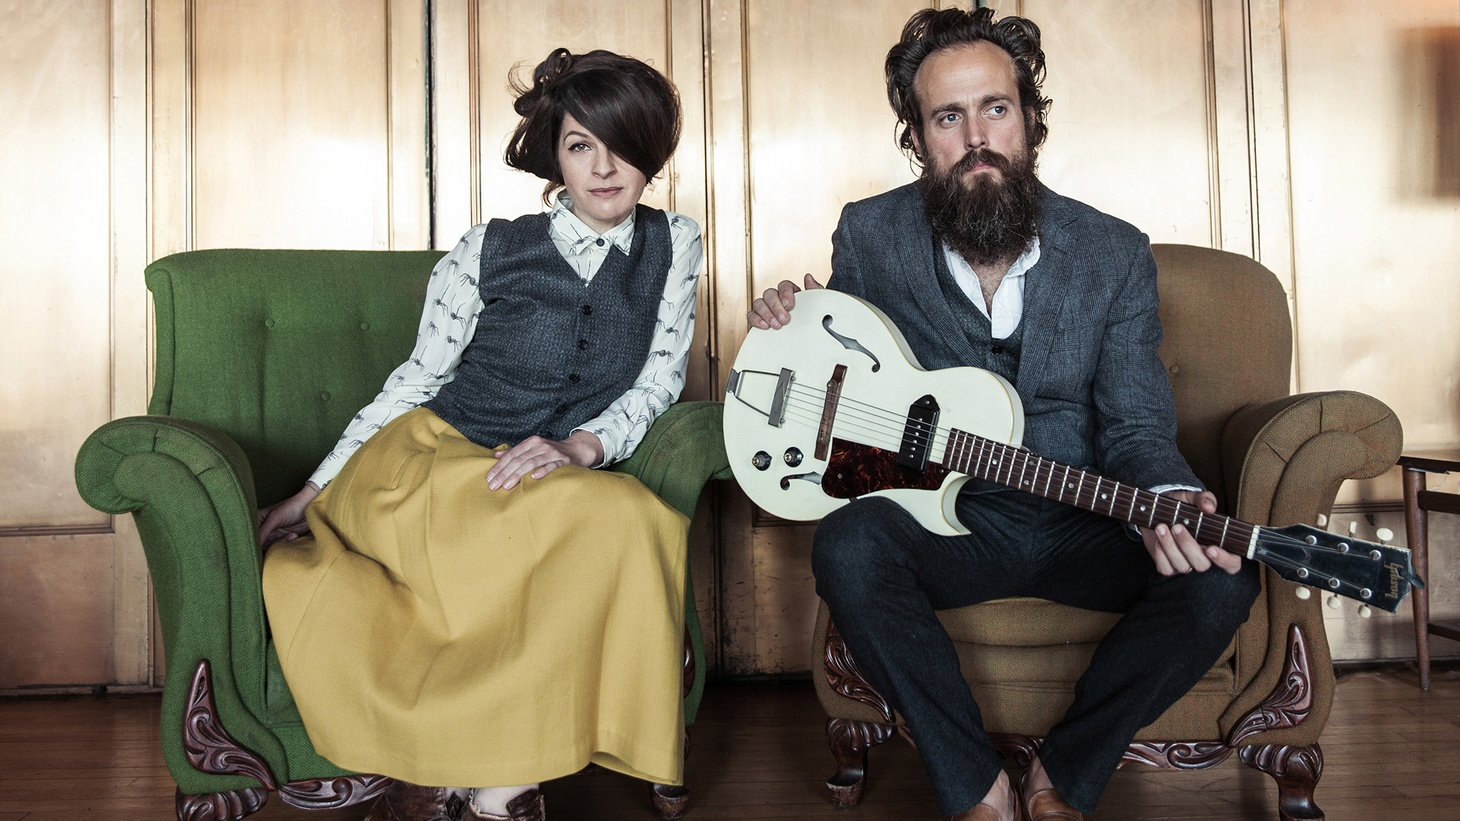 Sam Beam (Iron & Wine) and Jesca Hoop are a natural fit as they are individually talented singer-songwriters.